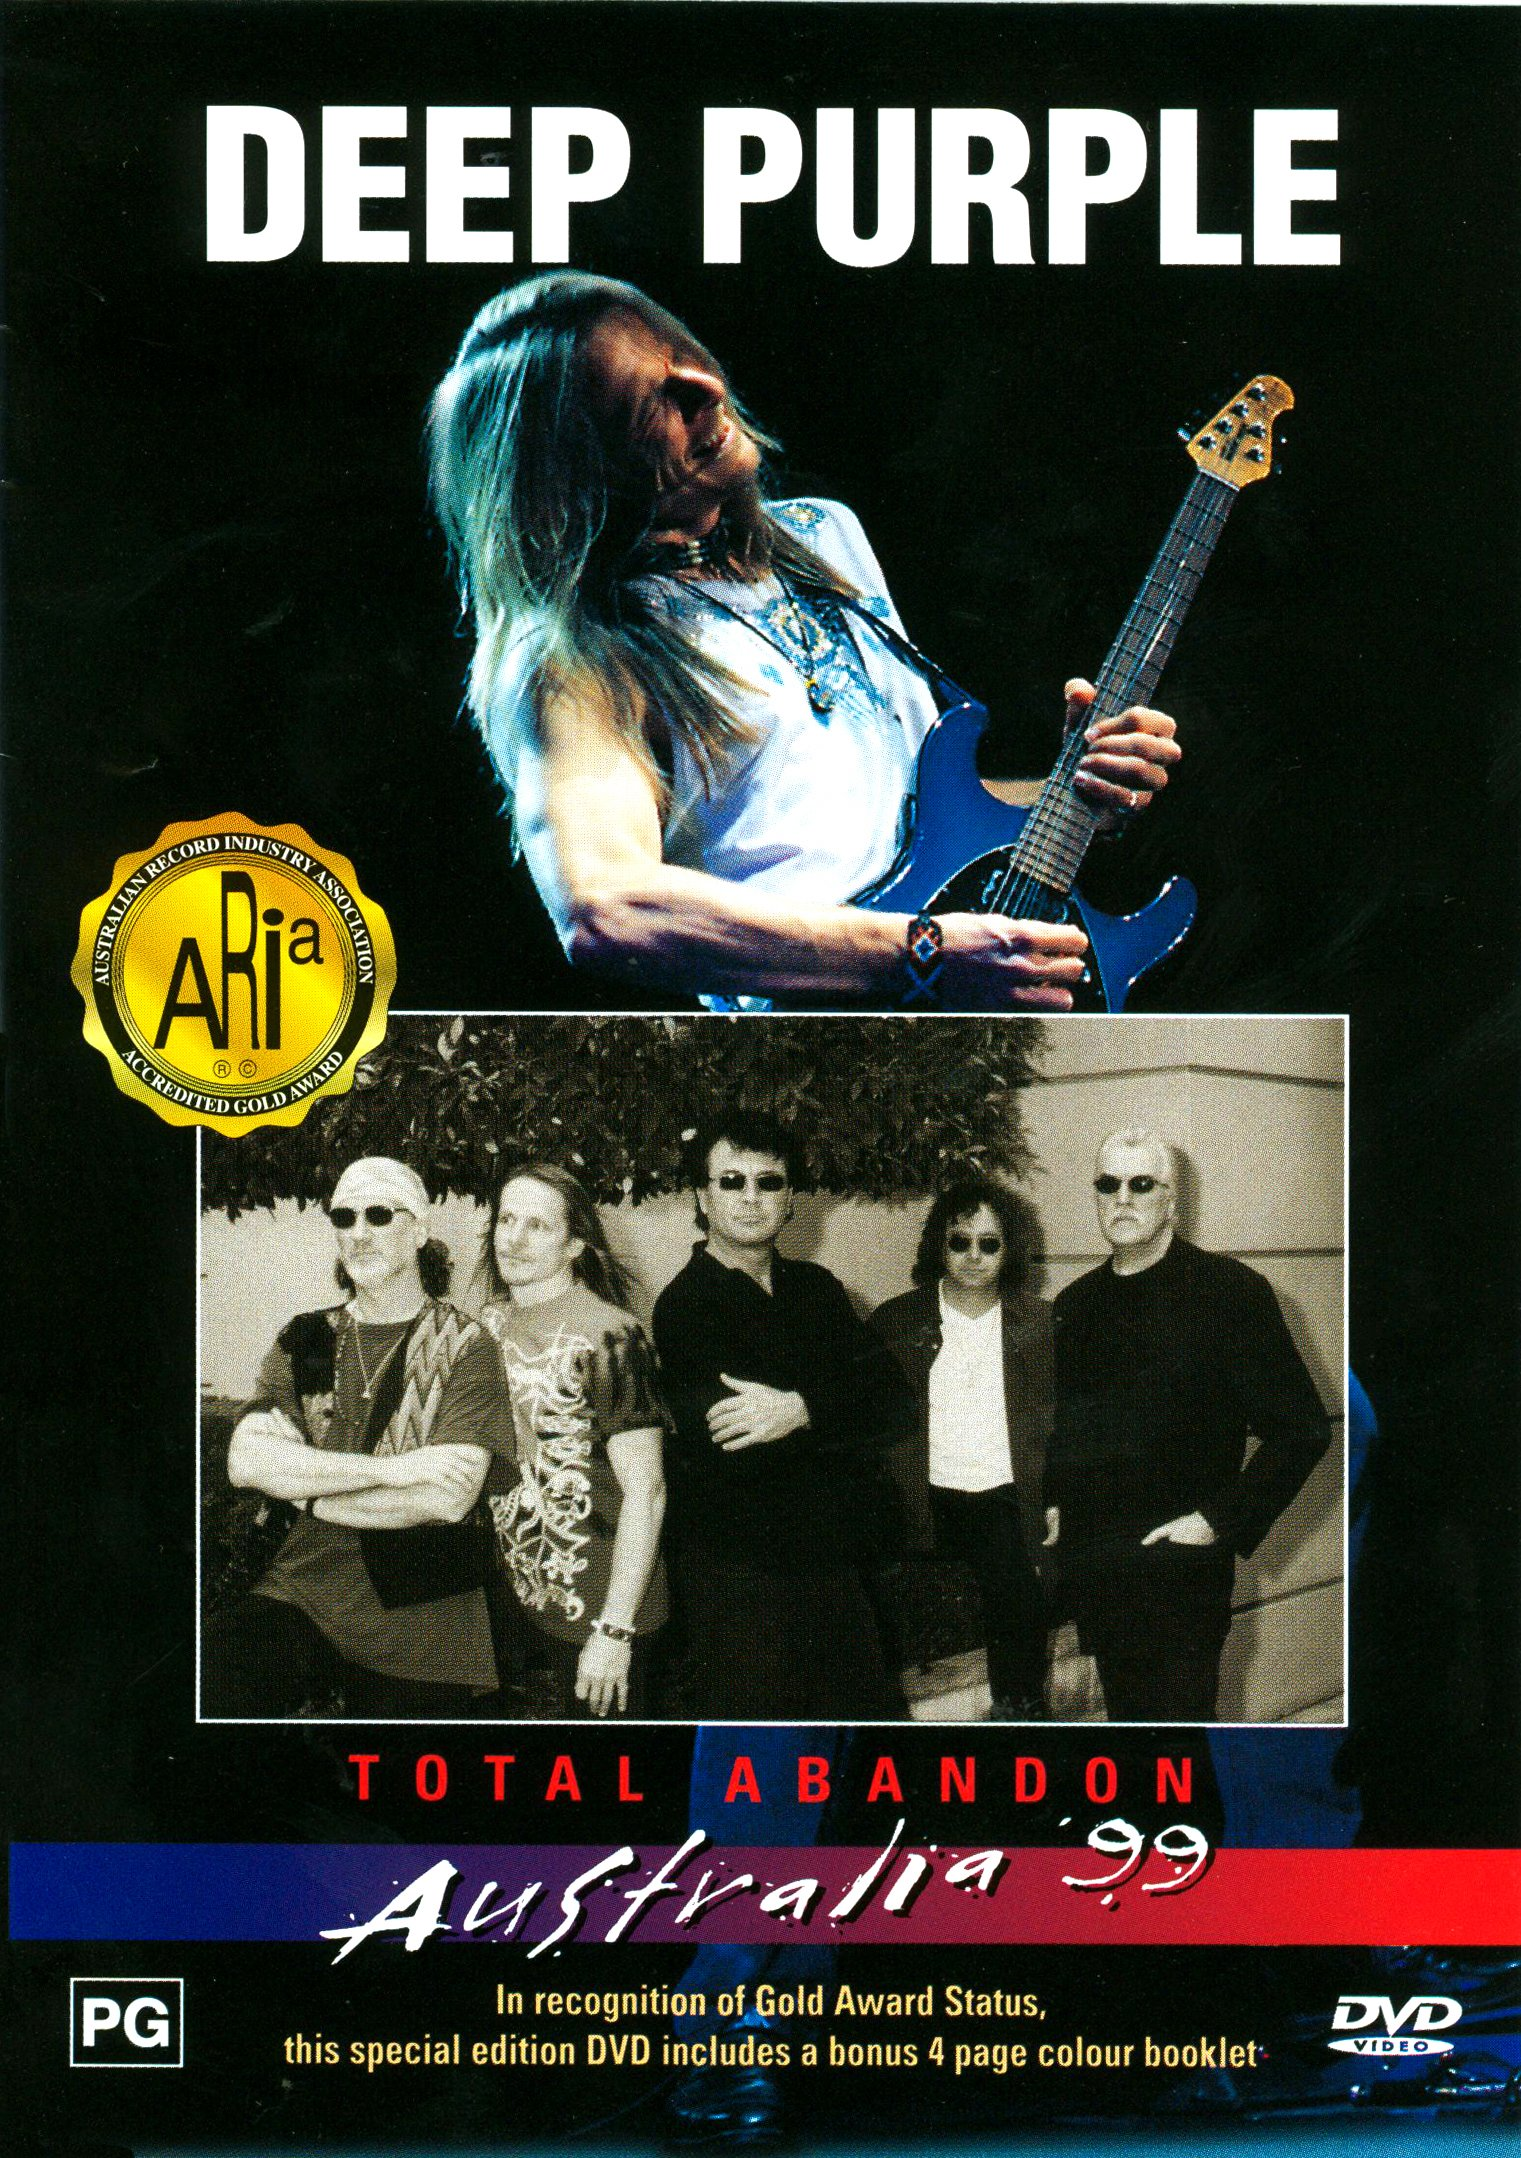 Deep Purple Live in Australia 1999 - Total Abandon by THOMPSON MUSIC